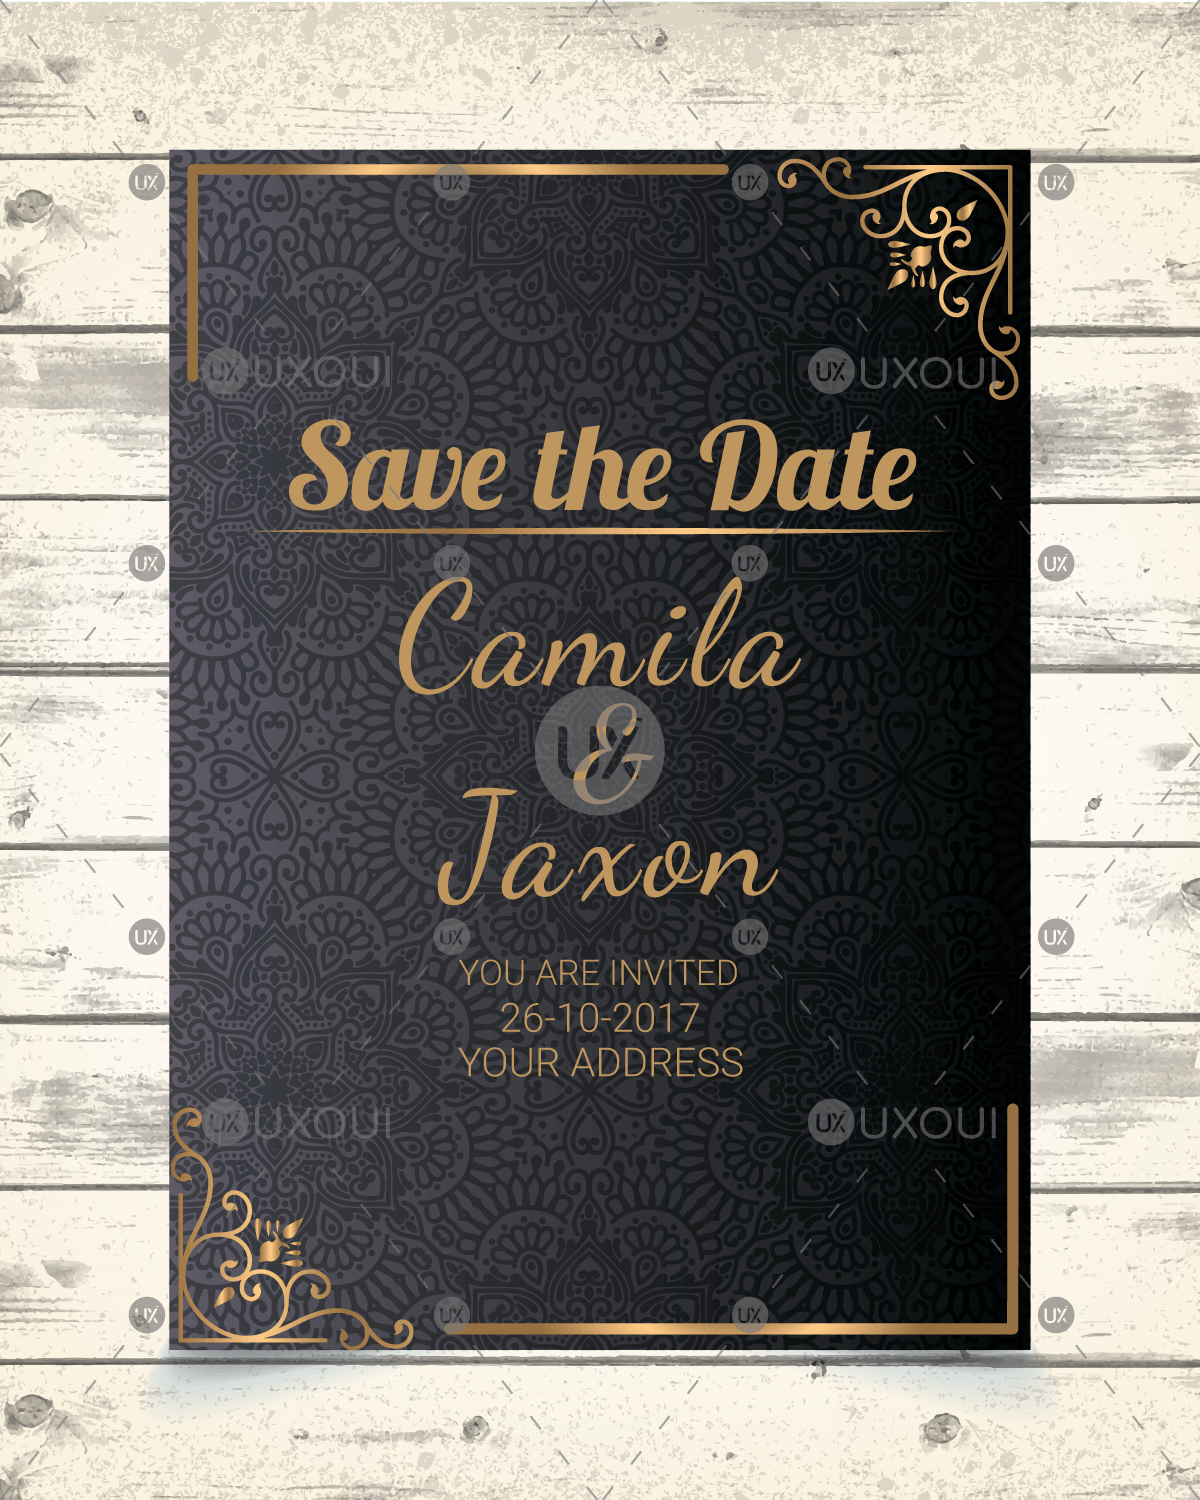 Save The Date Invitation Card Design With Luxury Ornamental Mandala